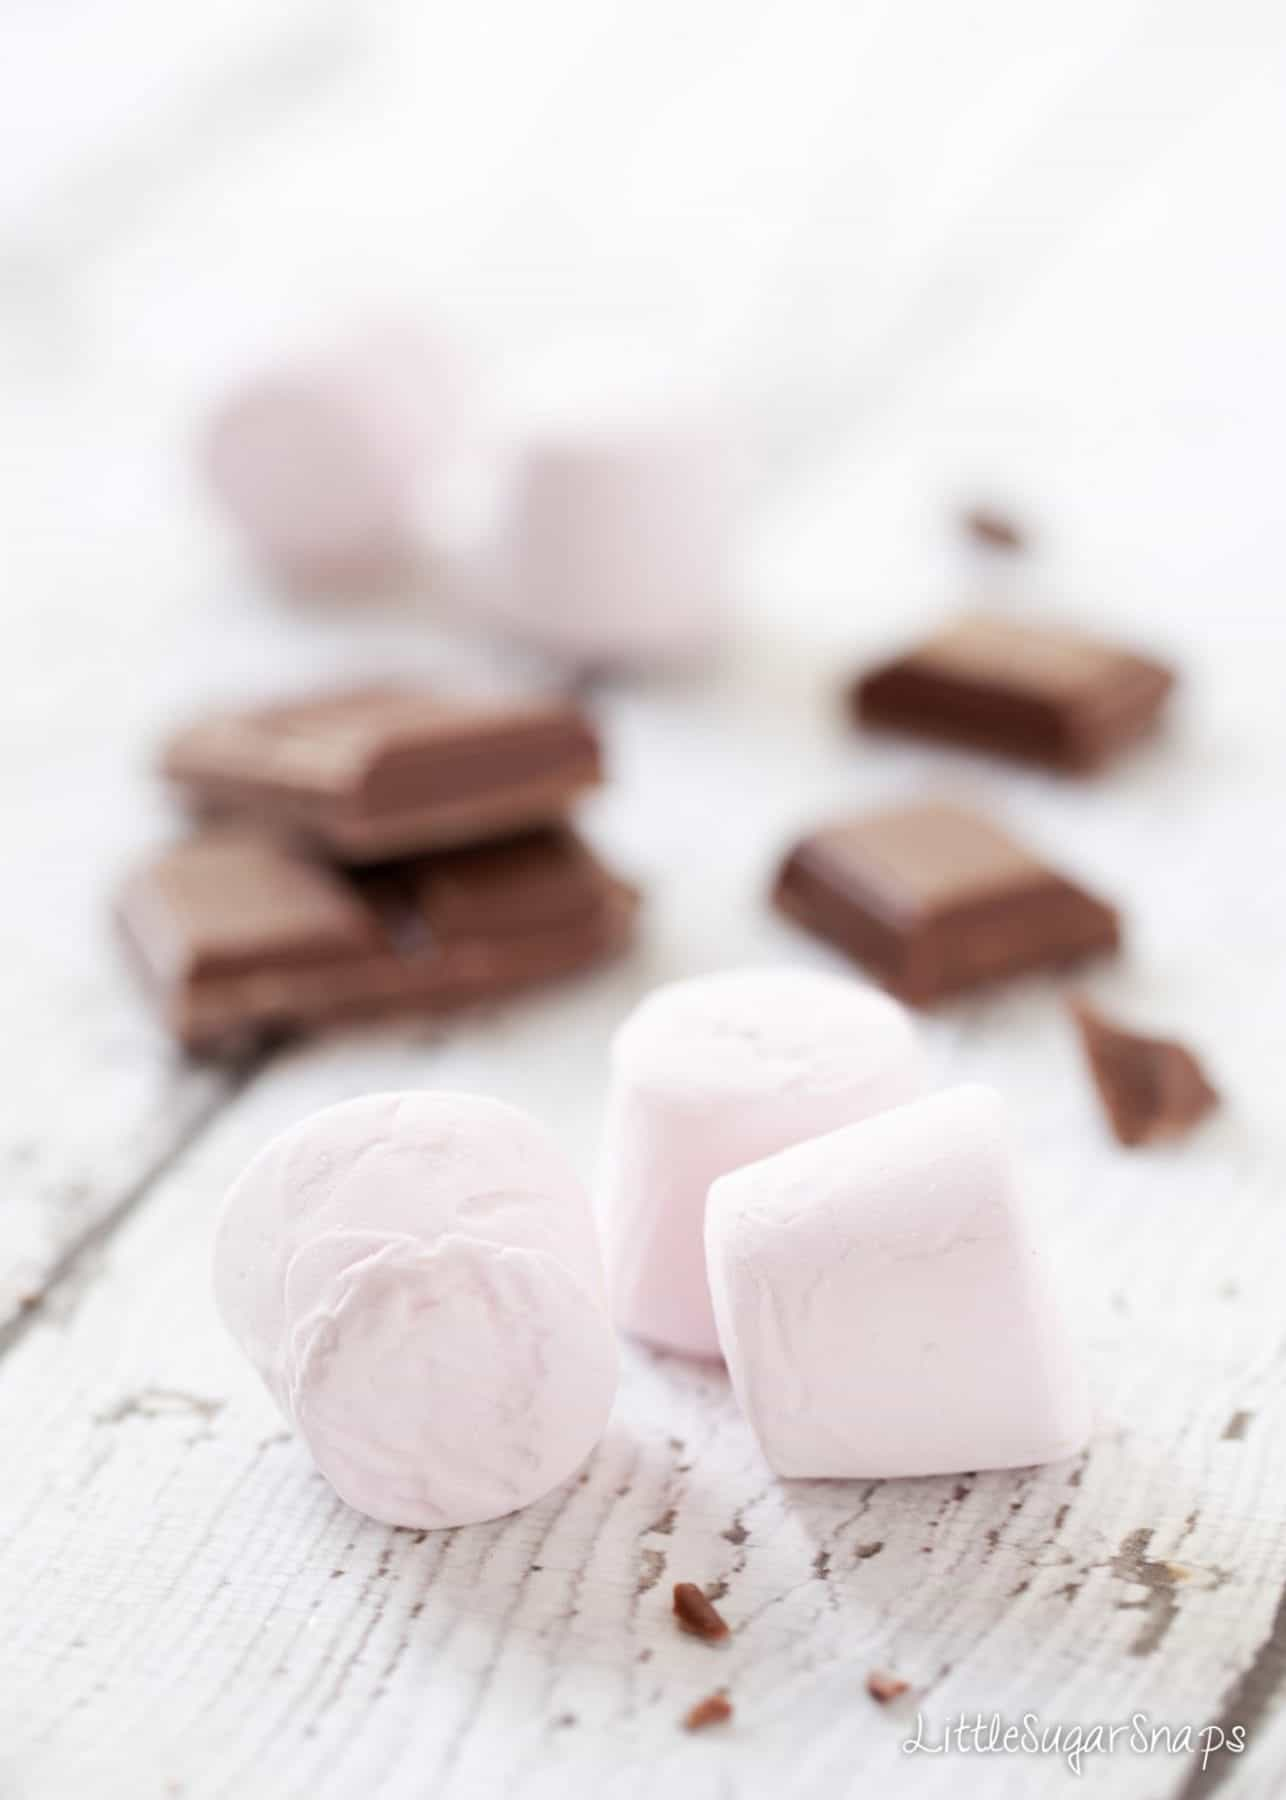 Chocolate and marshmallows - ingredients for Millionaire's Caramel Krispie Squares